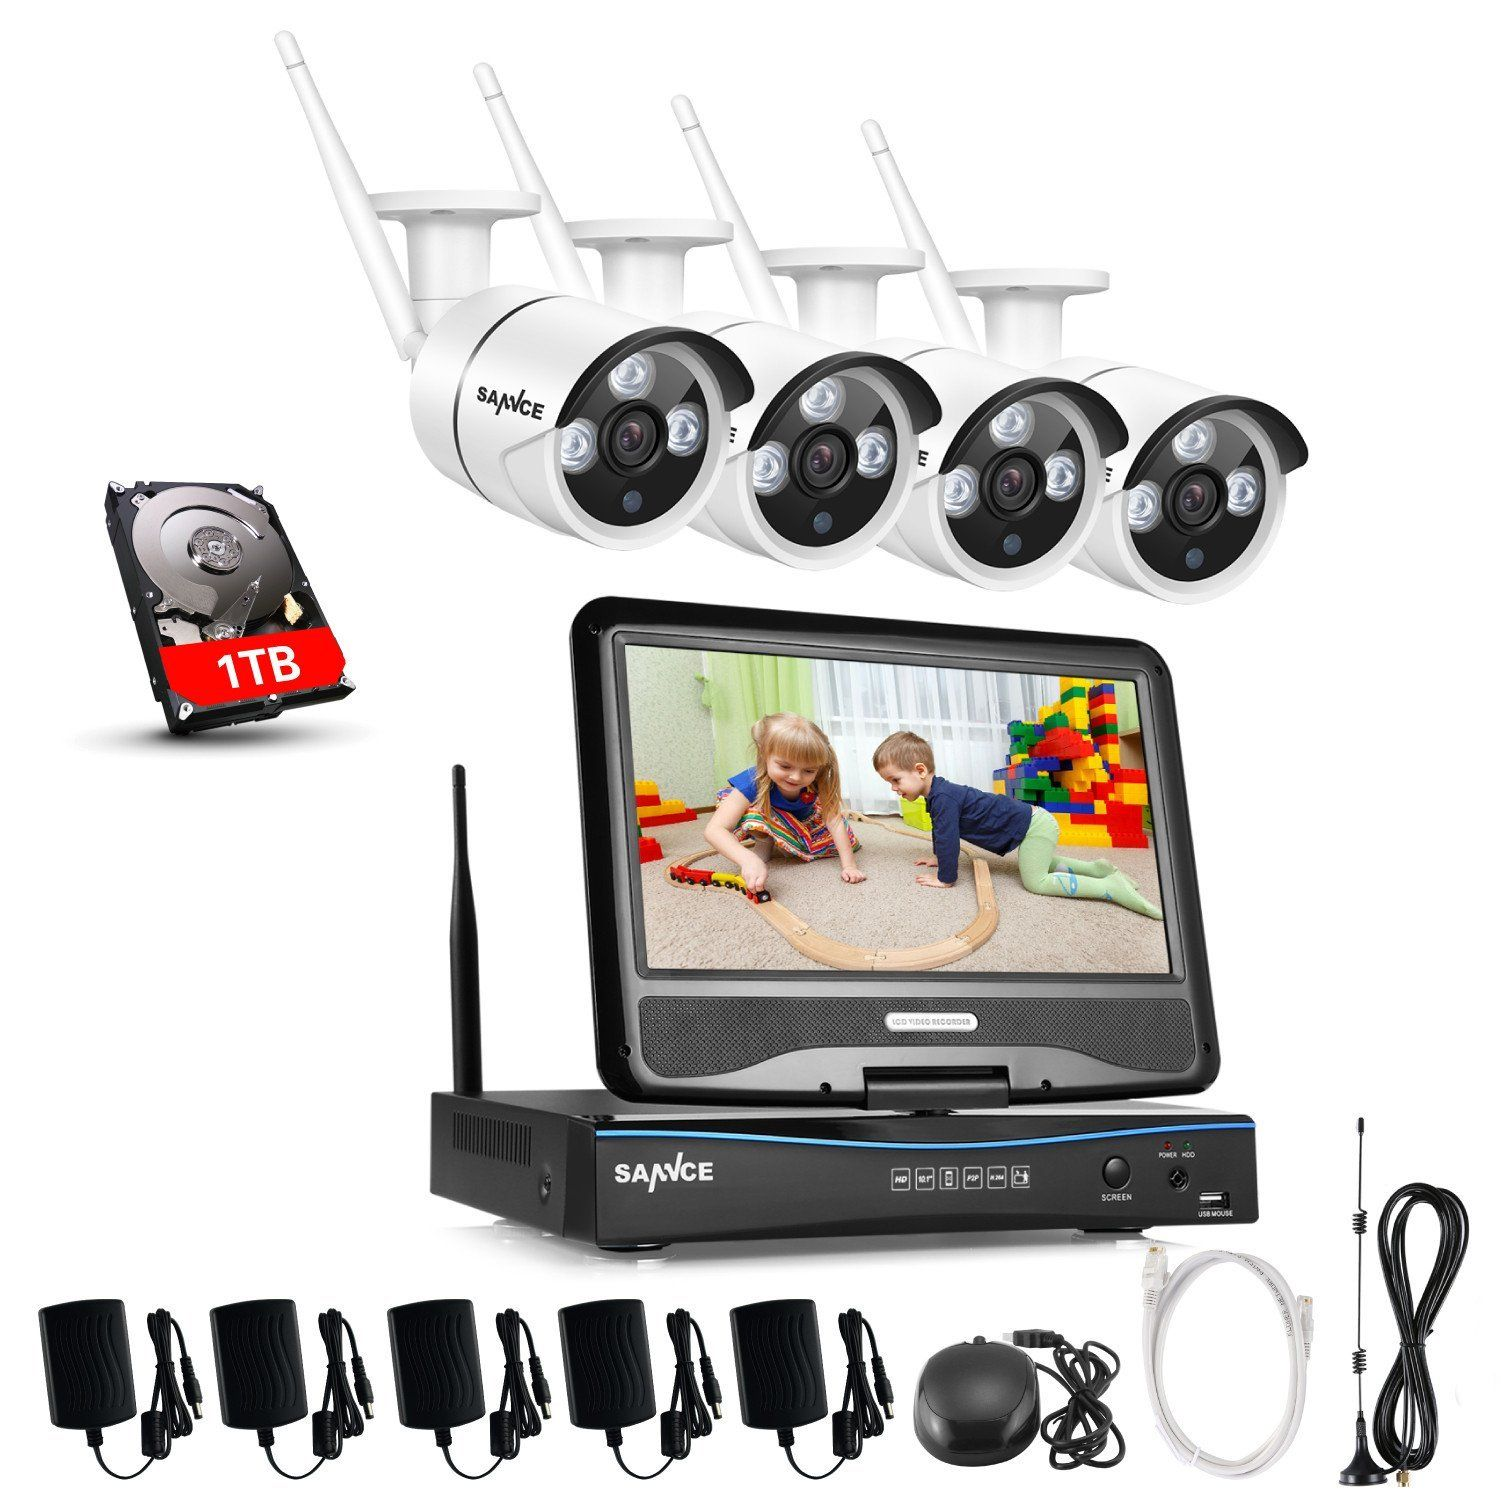 P WiFi CCTV Video Security System with Inch LCD Screen